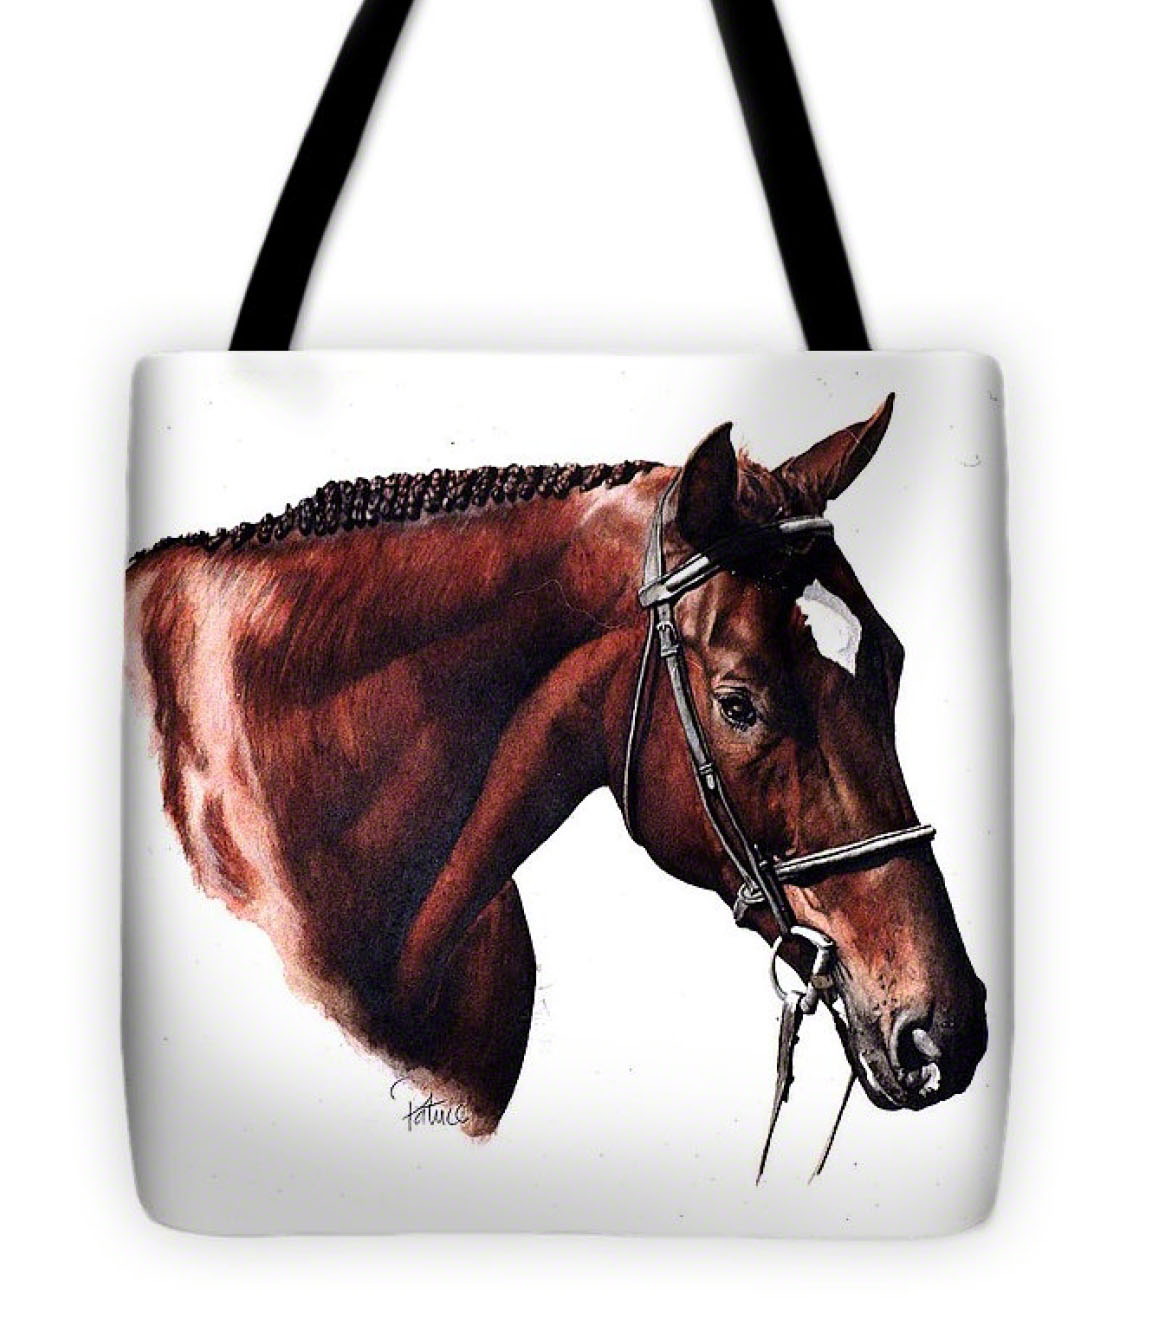 Dave's Horse Tote-Bag - Product by Patrice